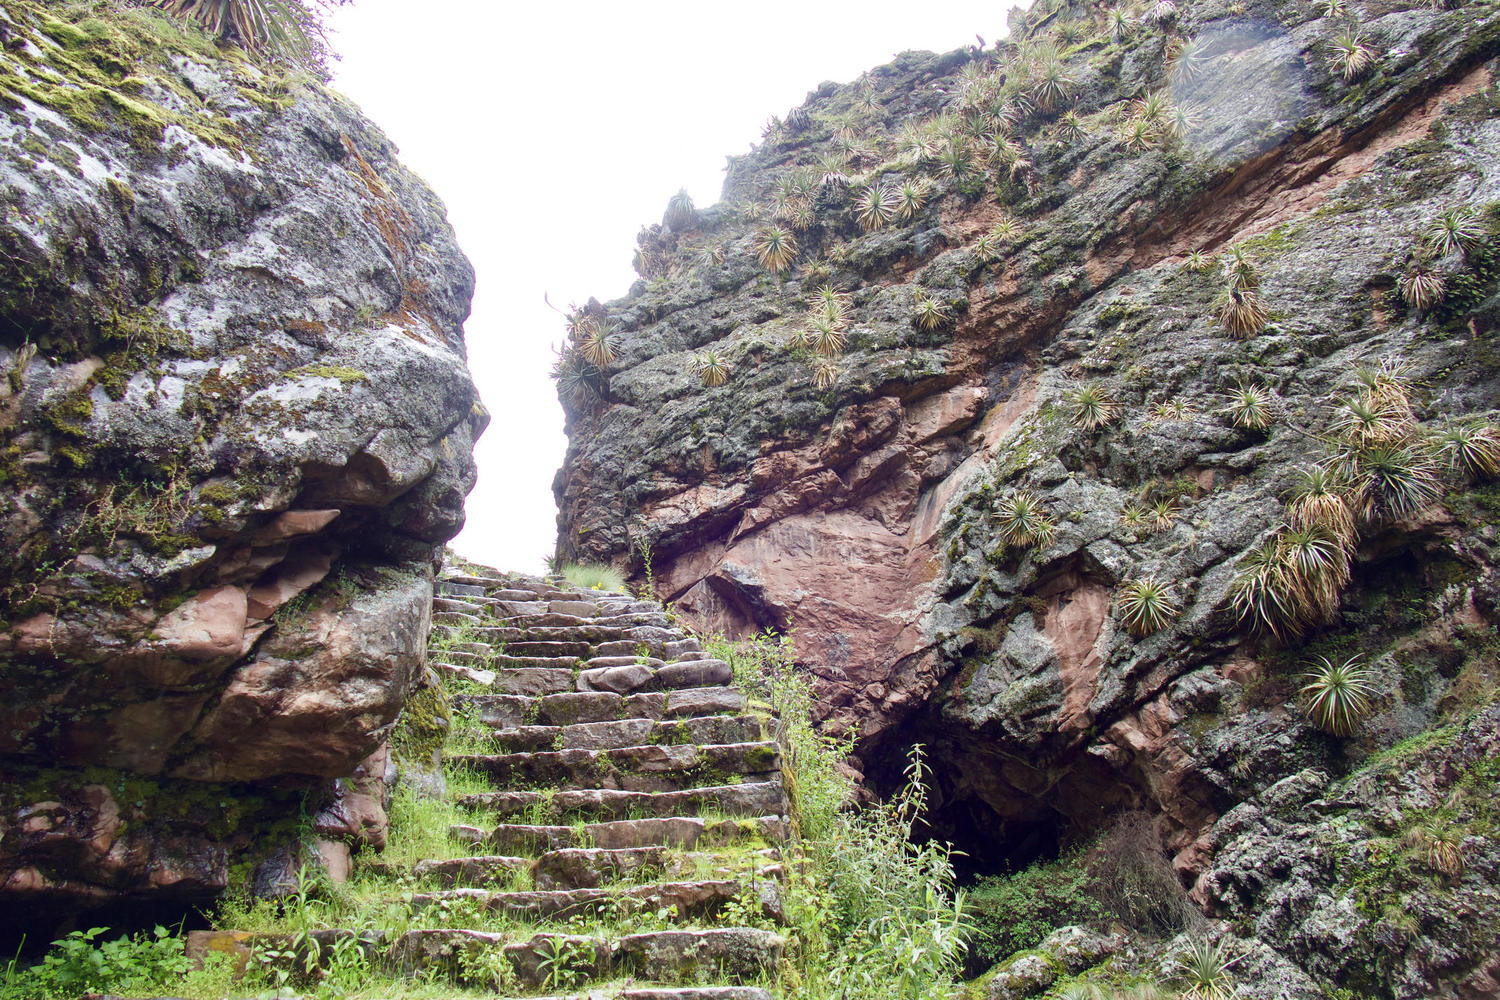 Inca steps in the canyon near Huchuy Qosqo